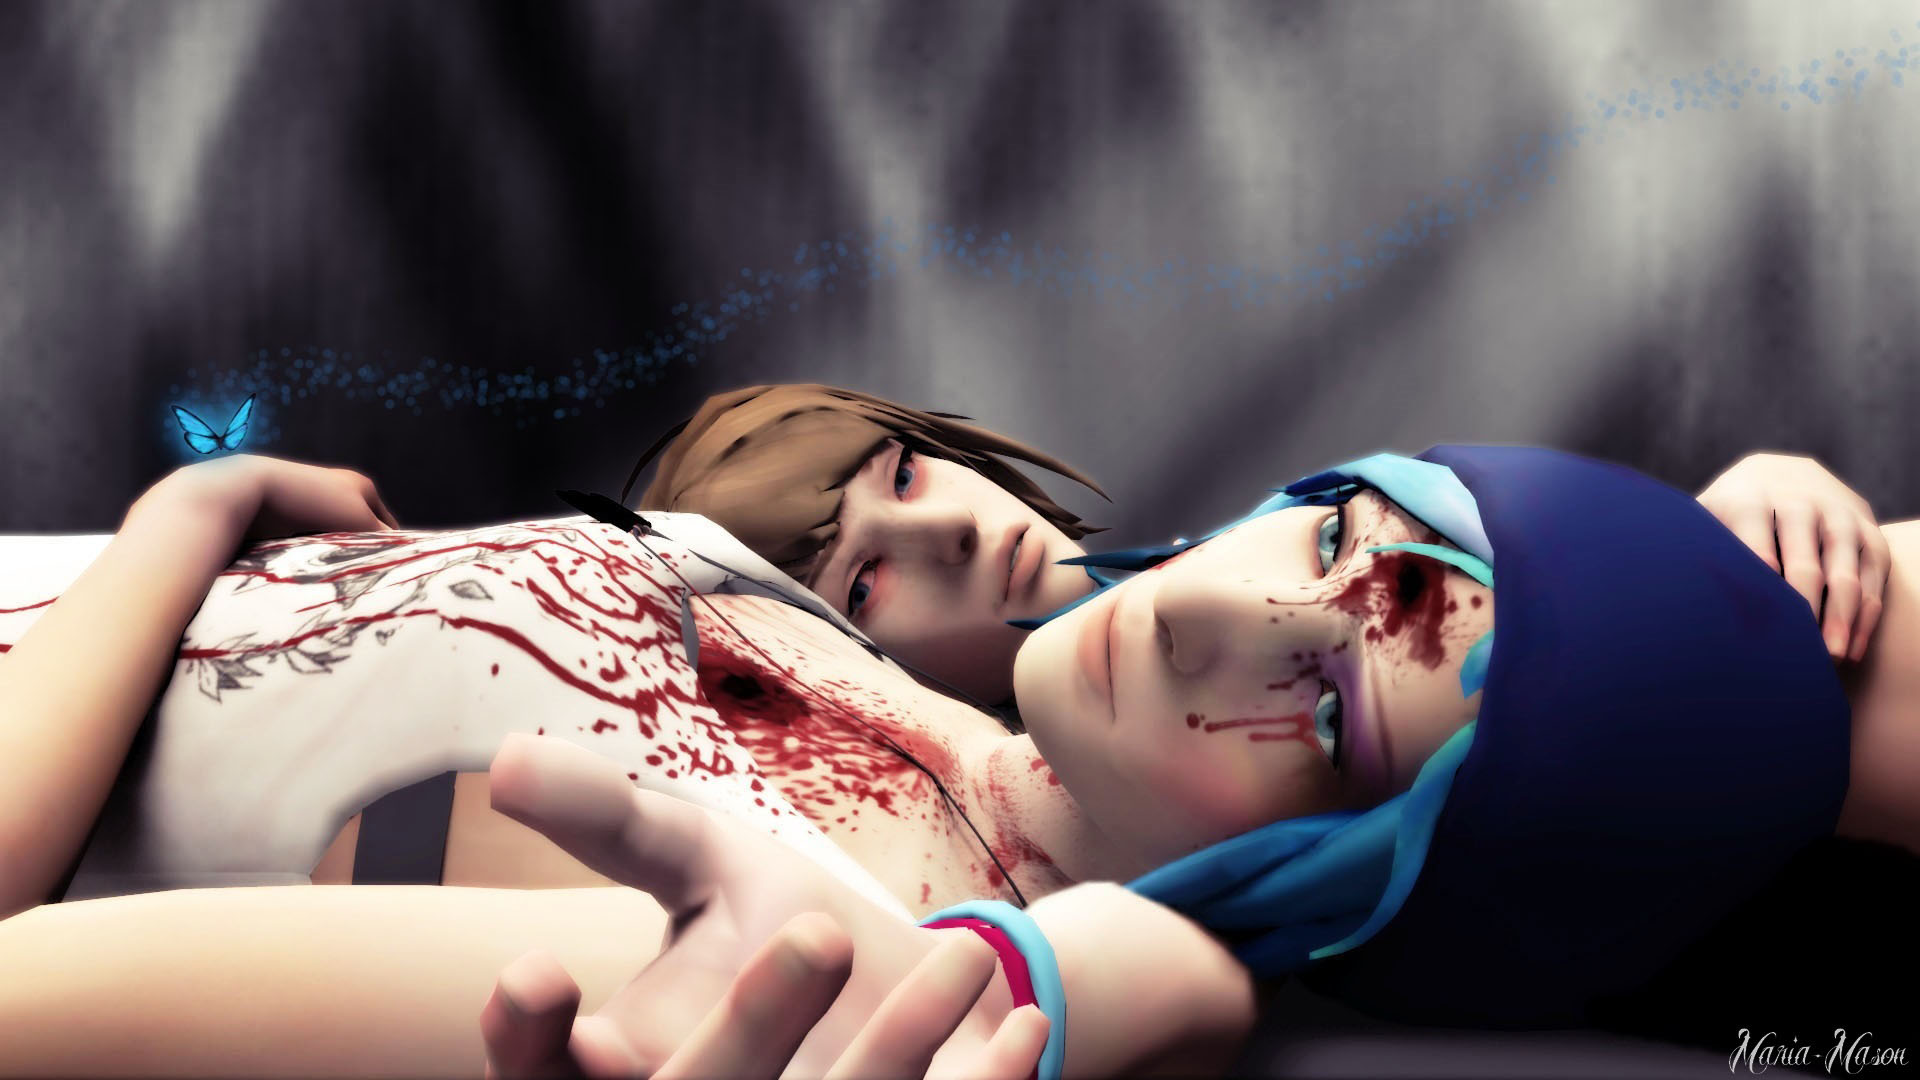 LiS - Max in the dark room by Maria-Mason on DeviantArt